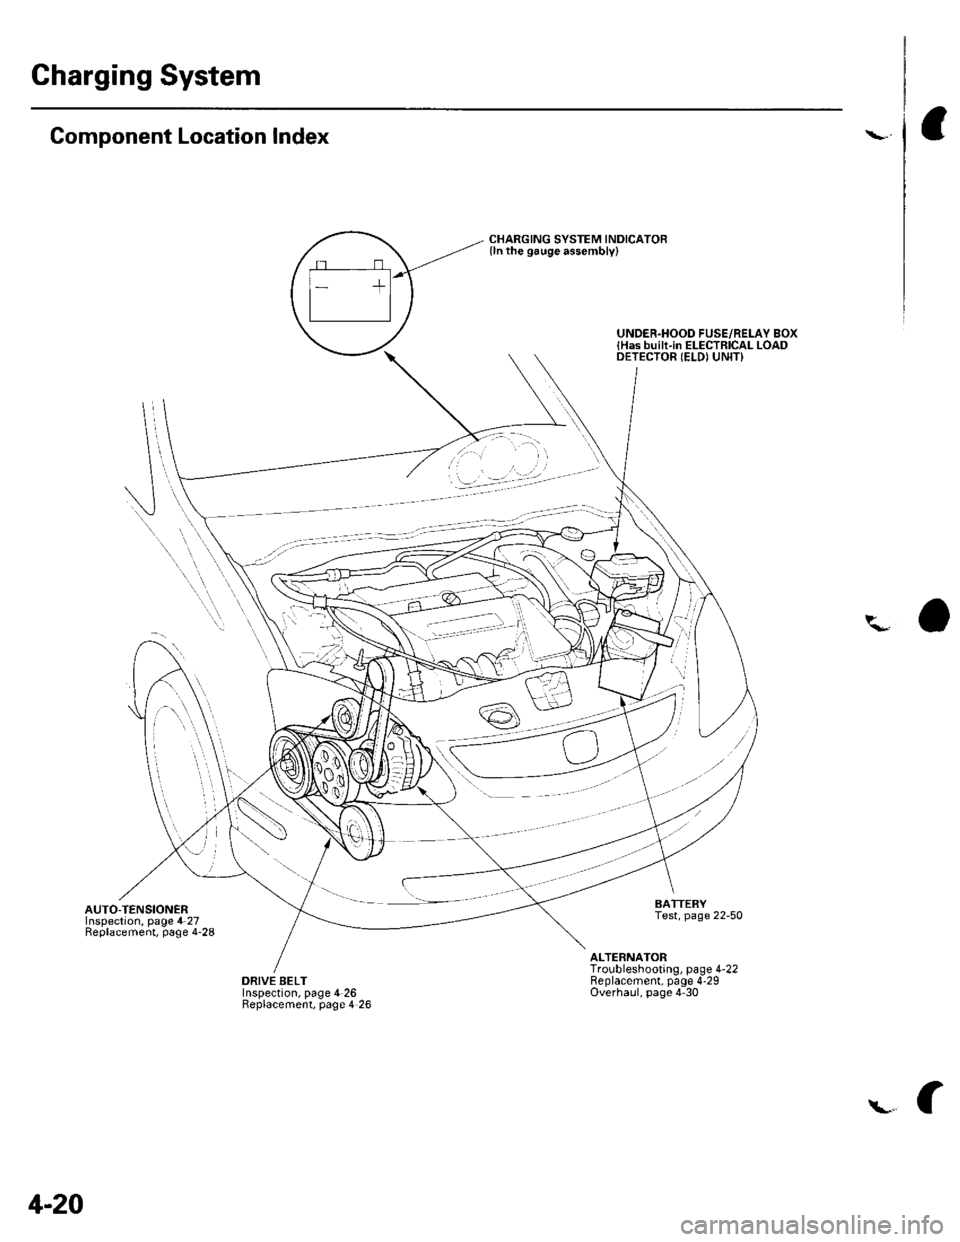 Charging Honda Civic 2003 7g Workshop Manual Under Hood Fuse Relay Box Page 55